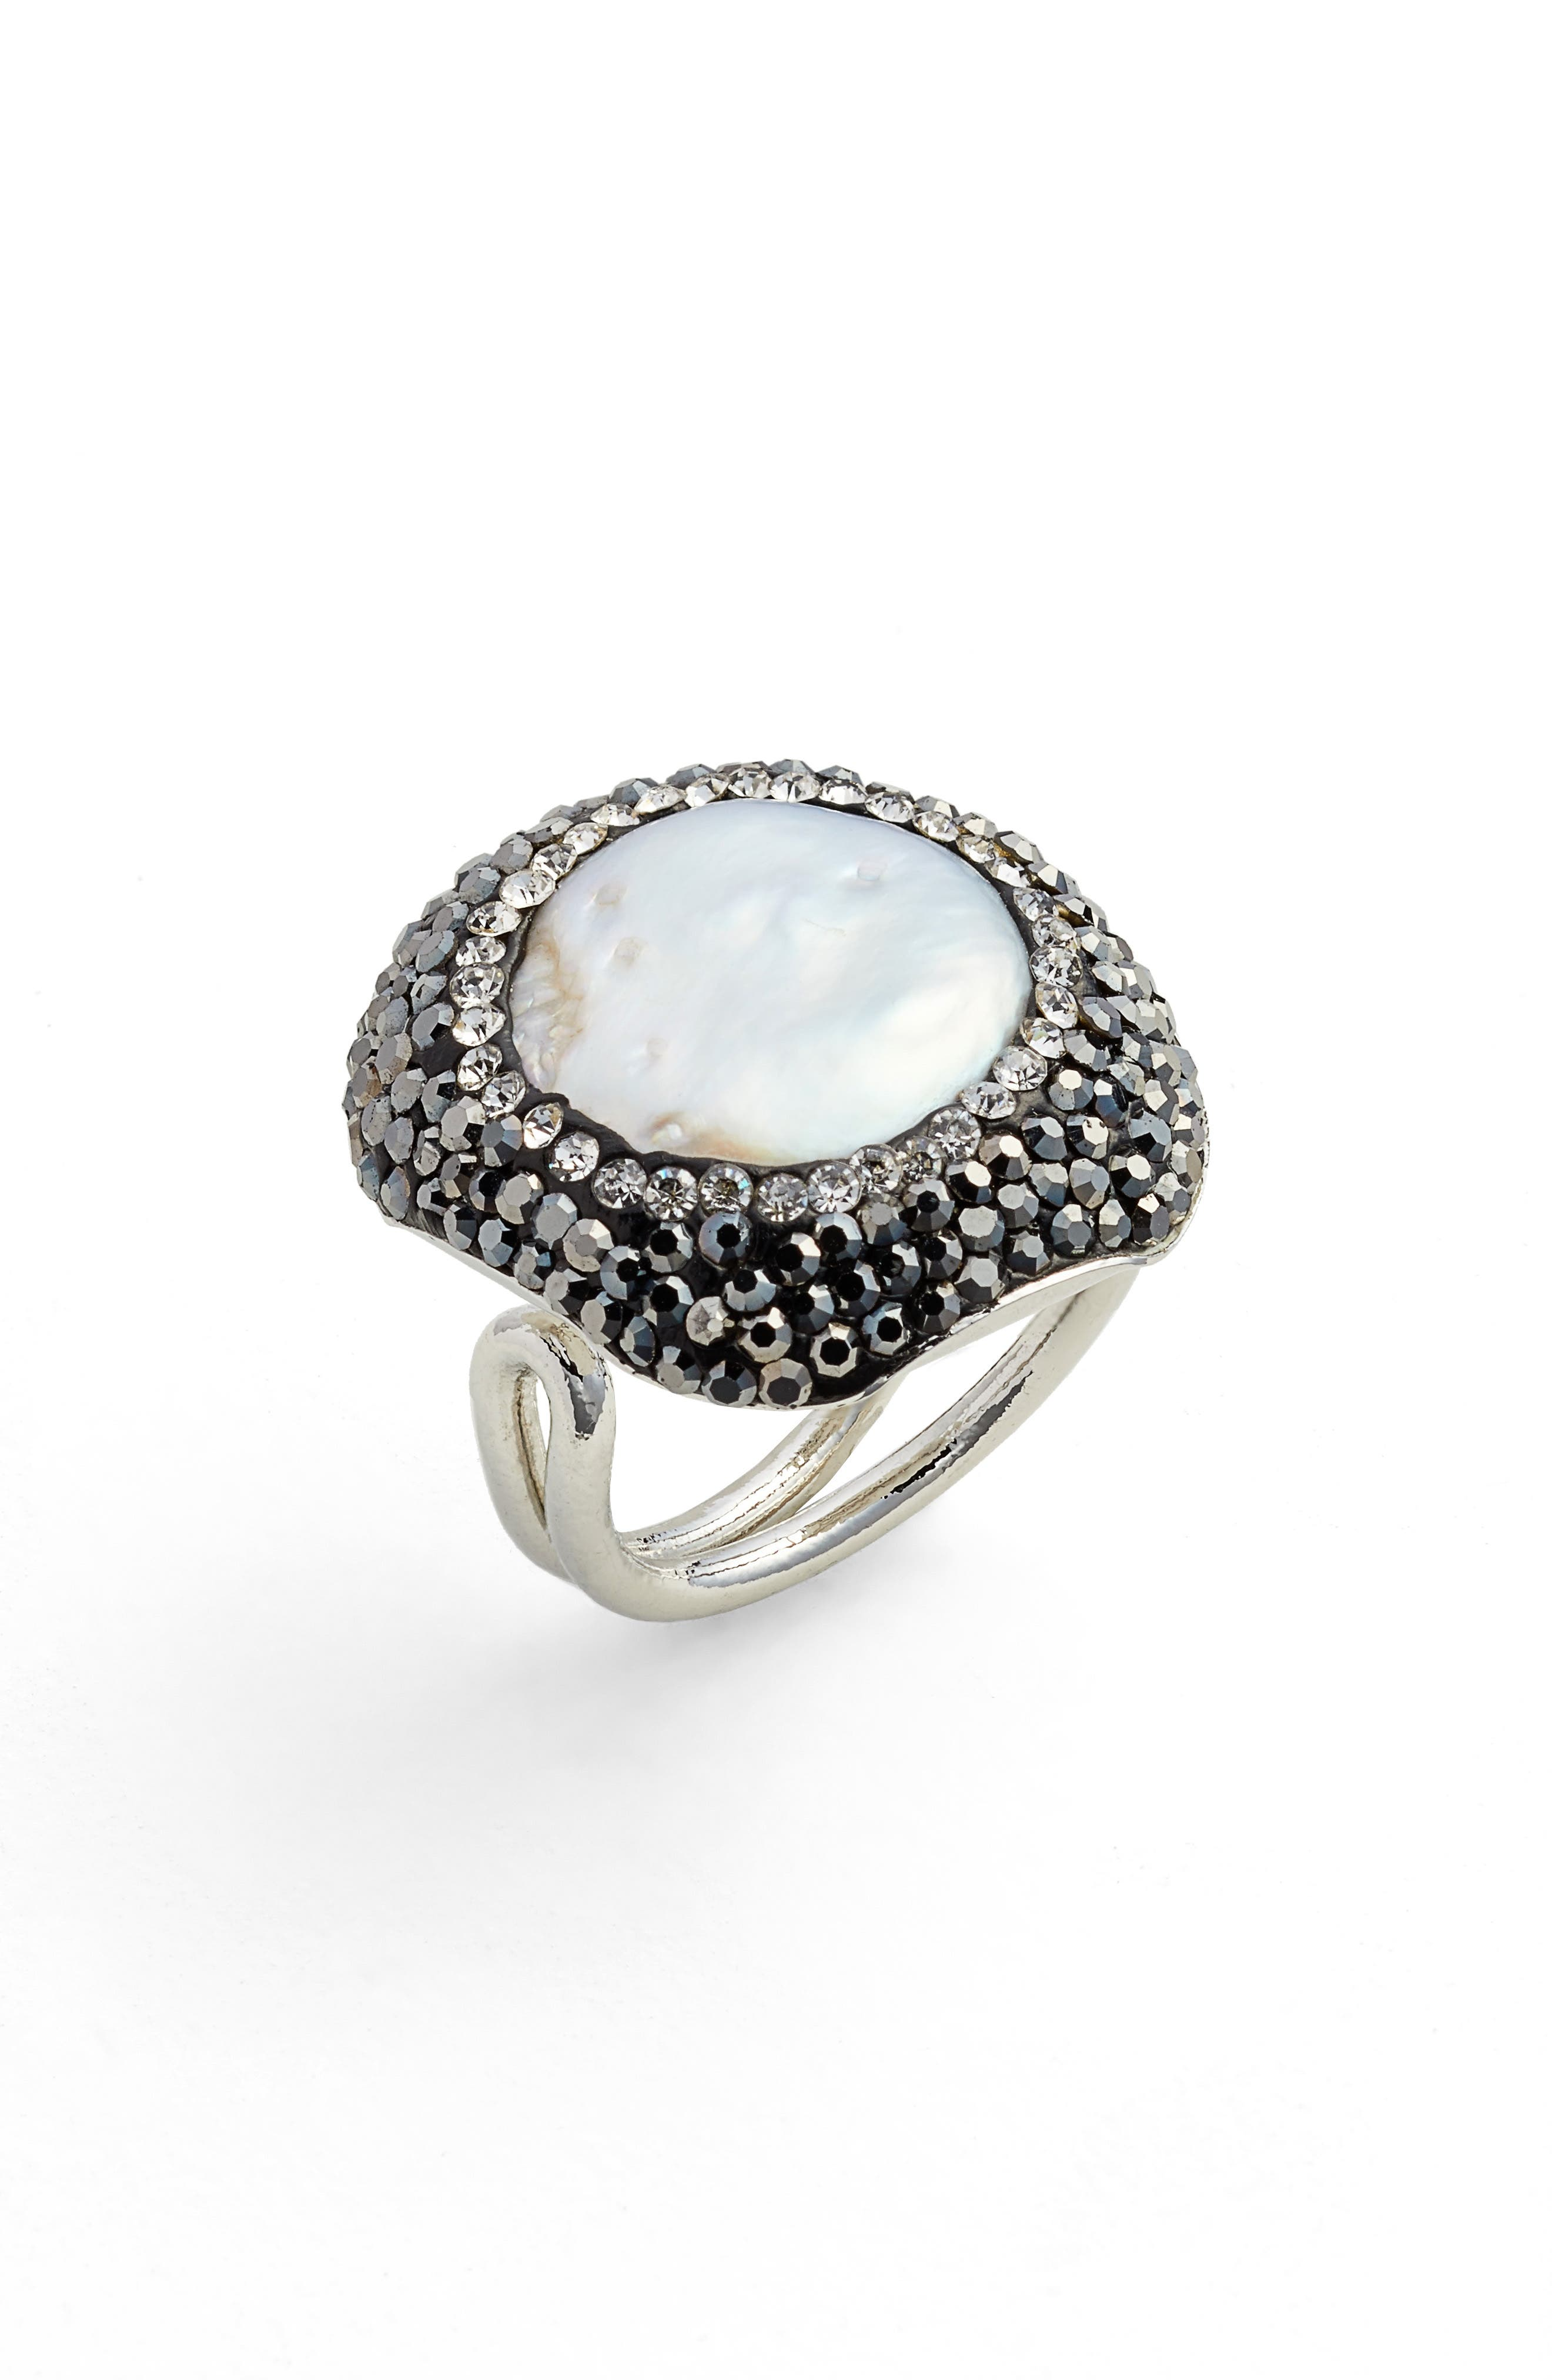 Clarinet Mother-of-Pearl & Crystal Adjustable Ring,                         Main,                         color, 900